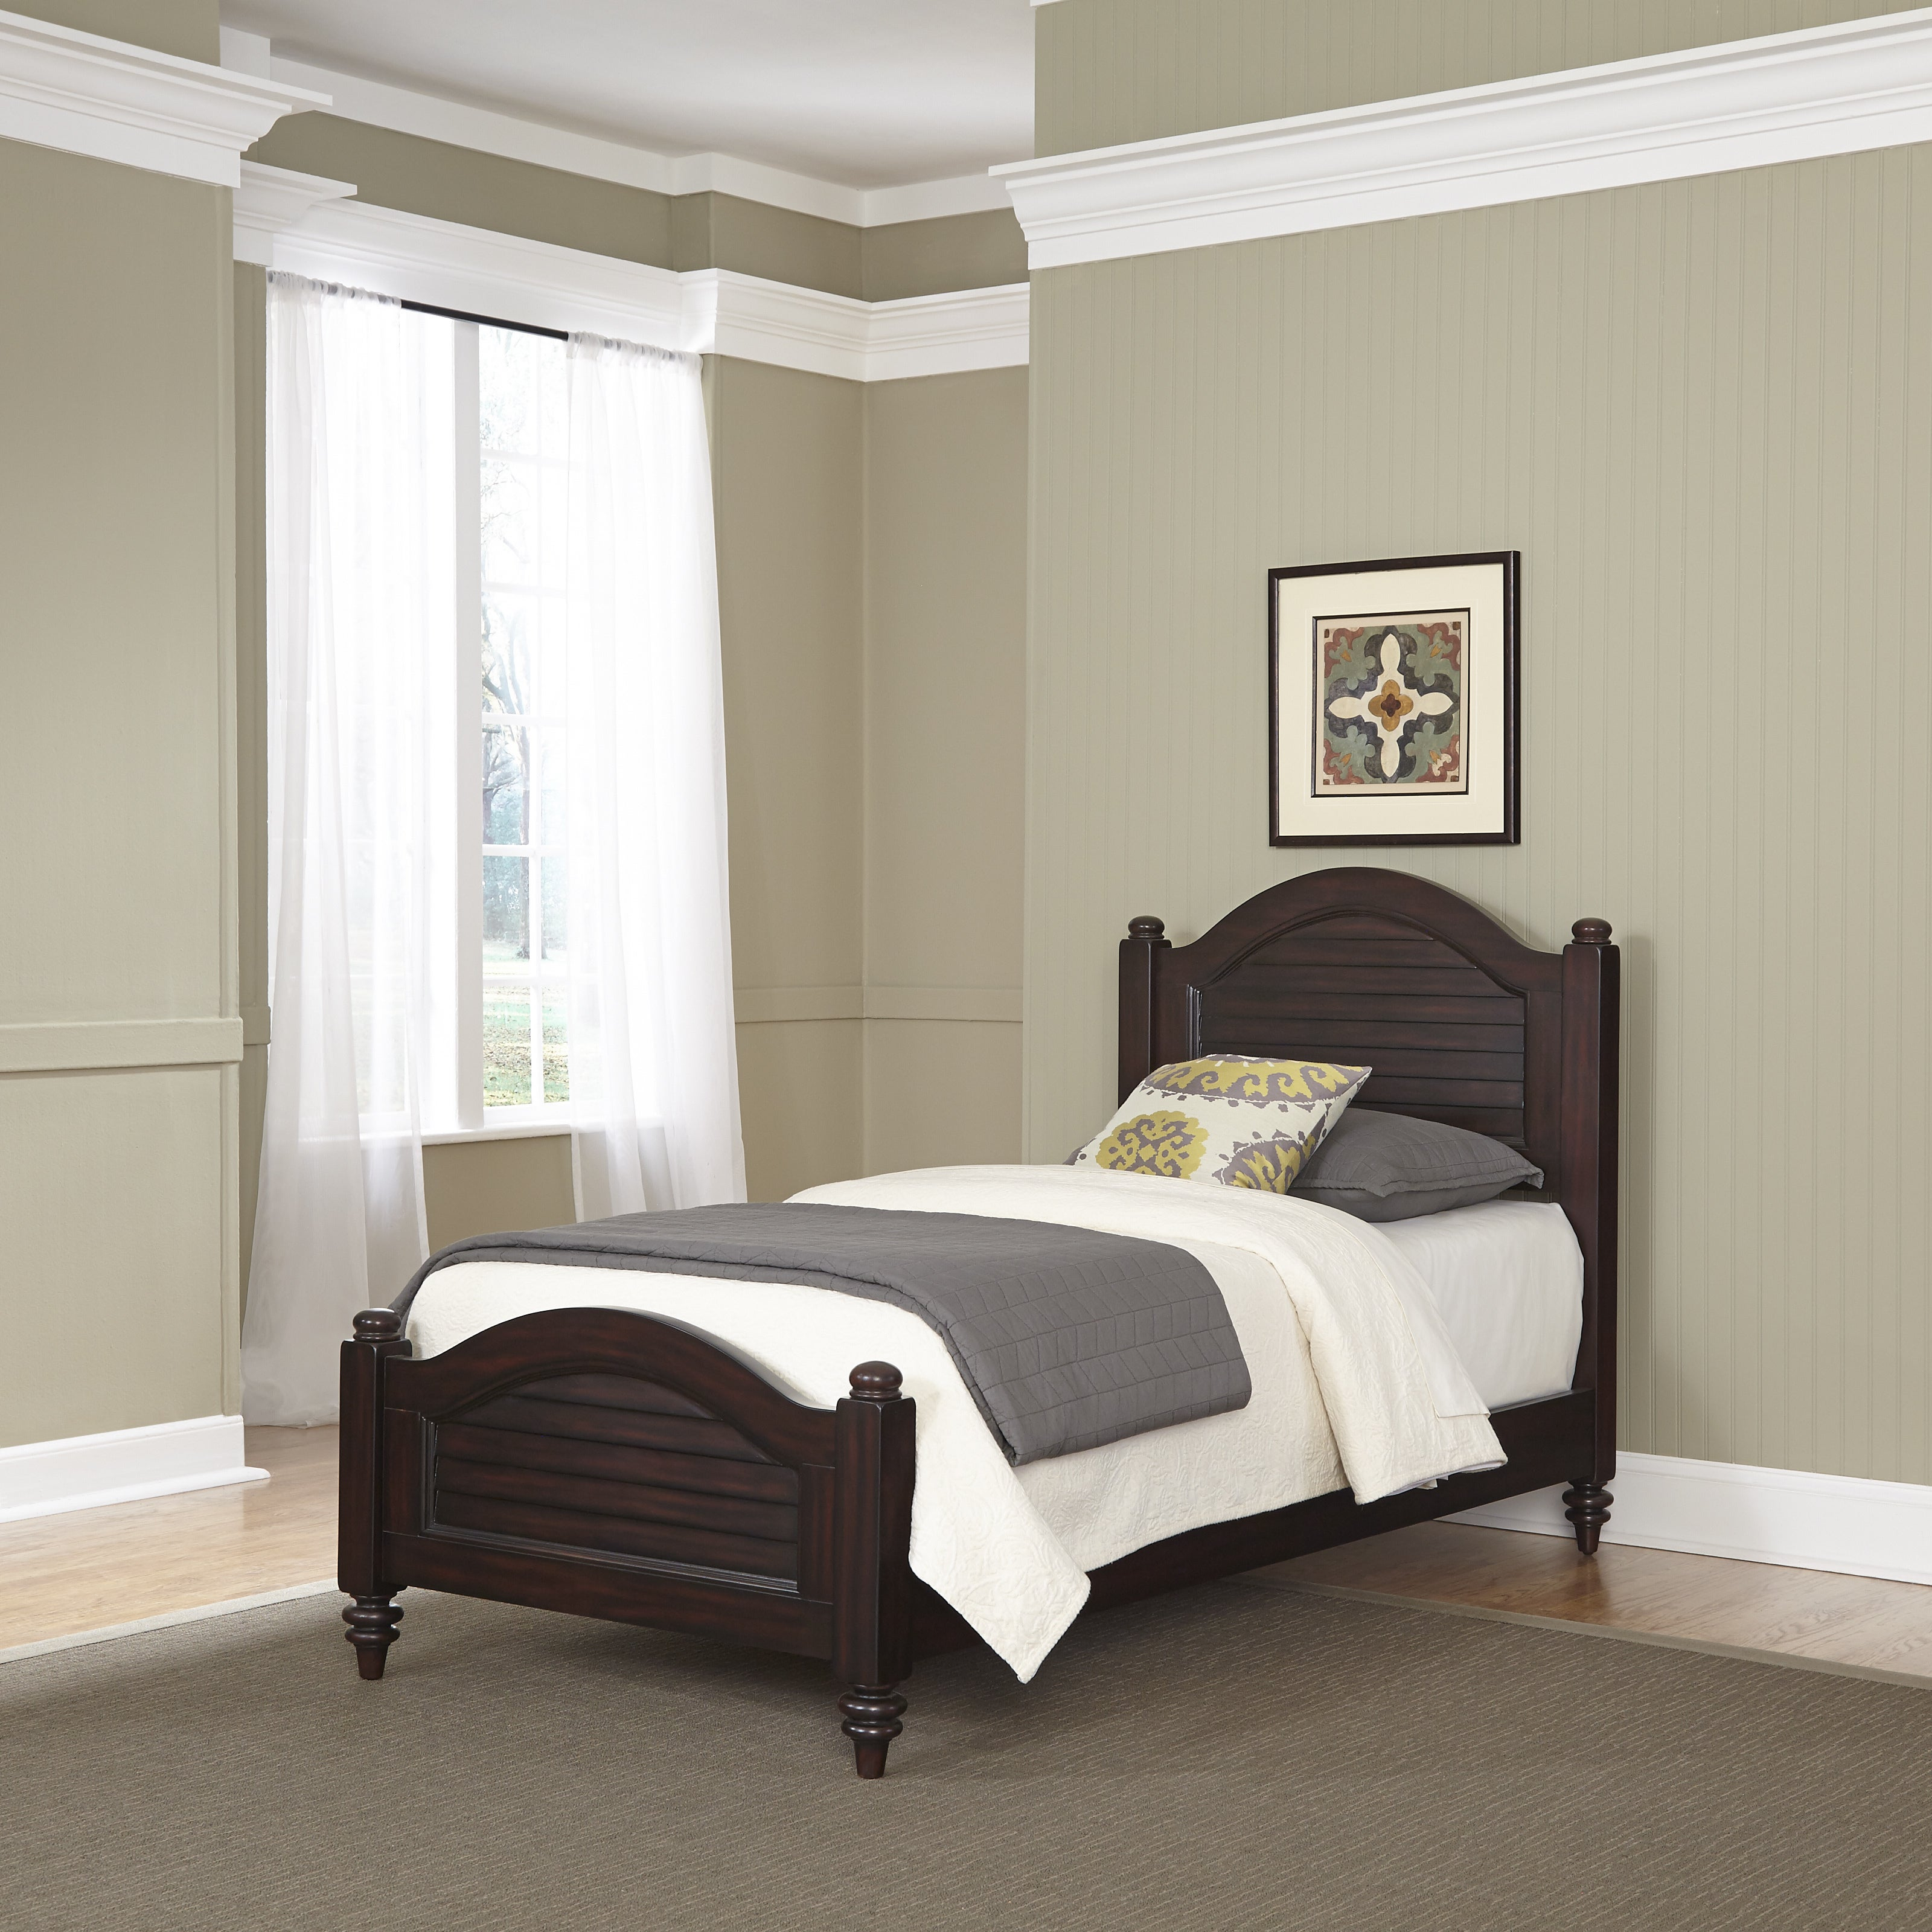 Shop Bermuda Twin Bed By Home Styles Overstock 20882523